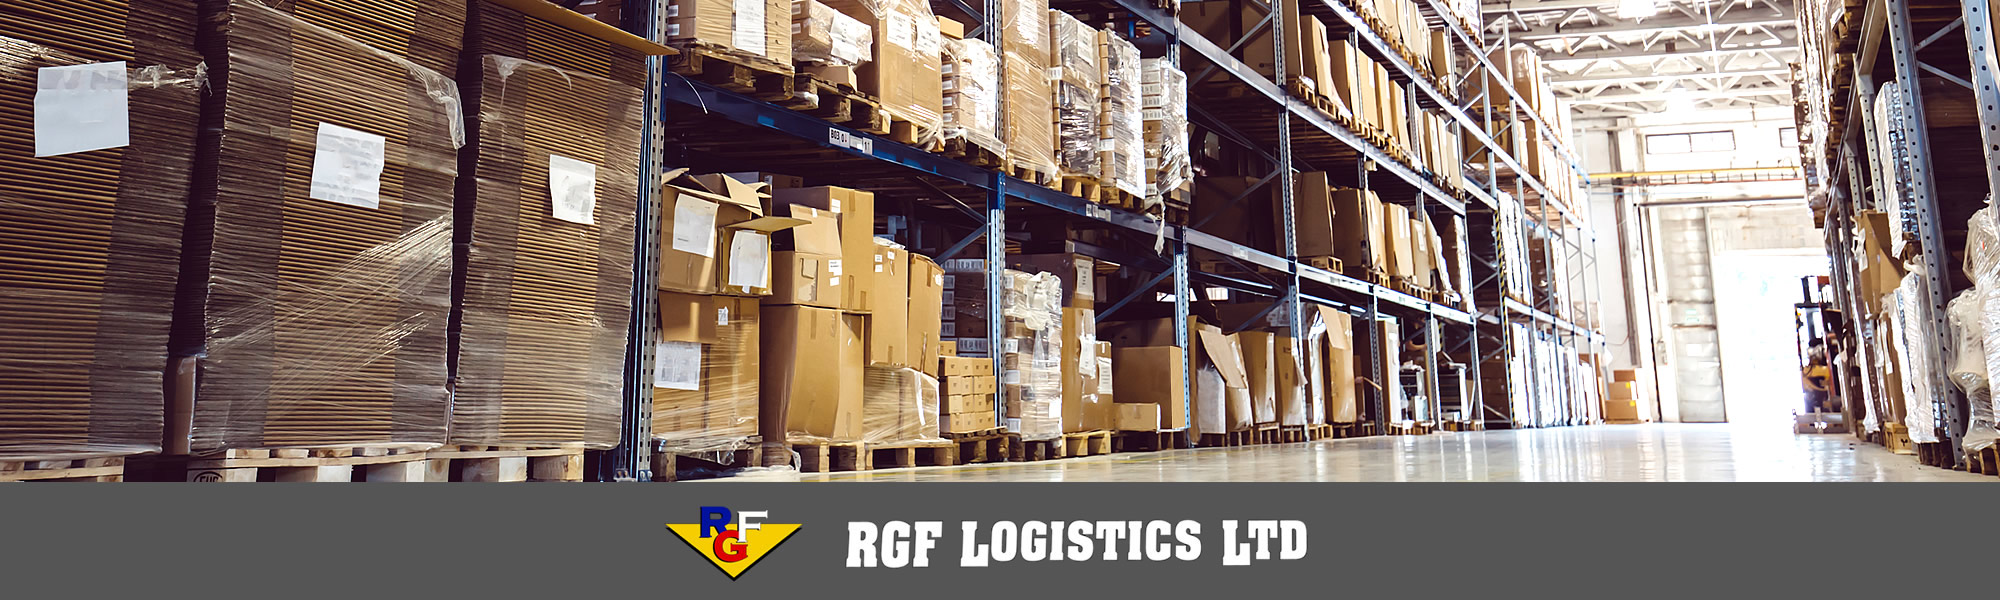 We combine our services to offer comprehensive storage and logistics solutions